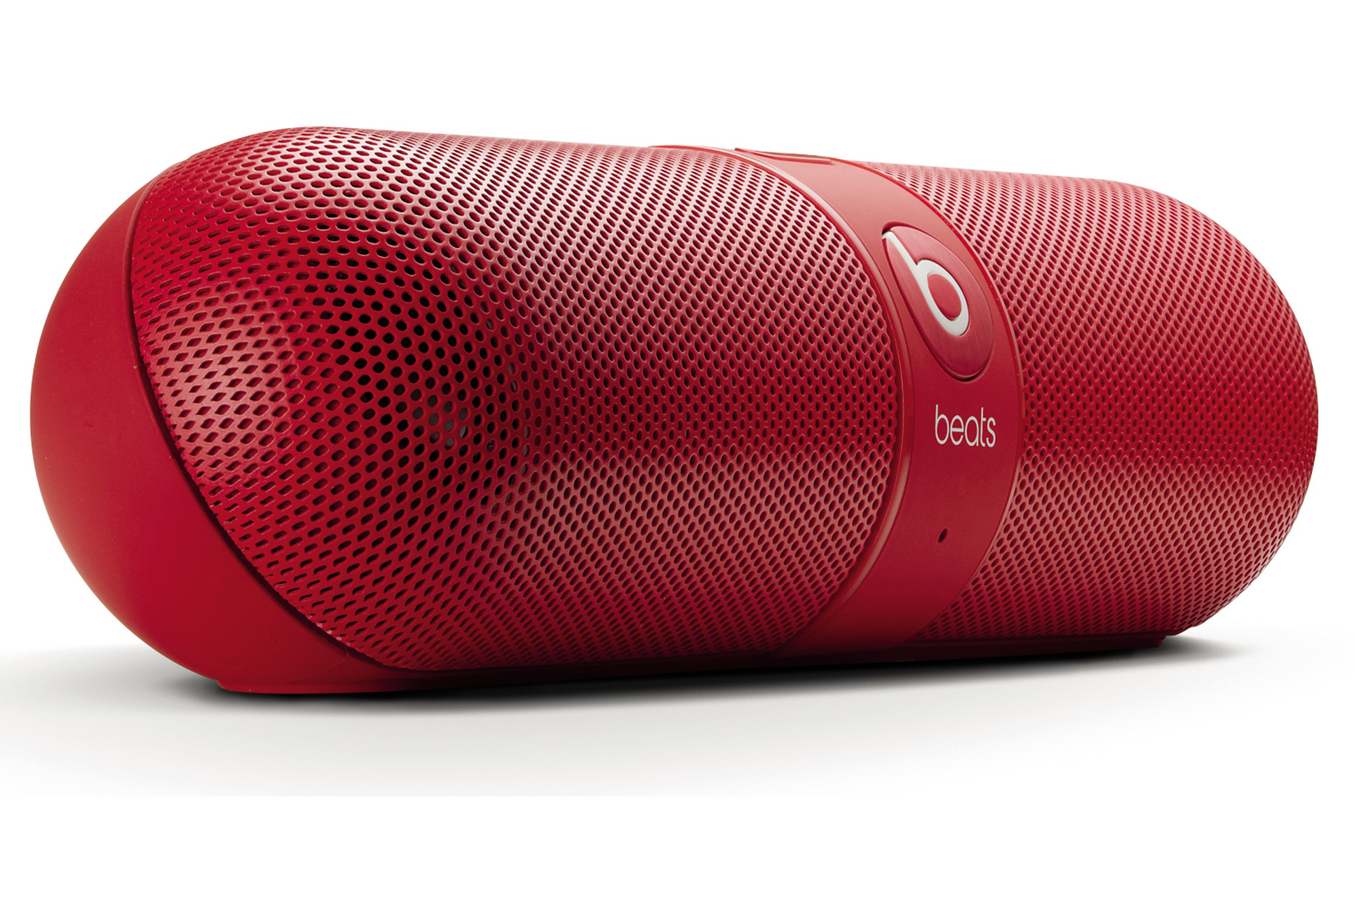 enceinte bluetooth sans fil beats beats pill v2 by dre. Black Bedroom Furniture Sets. Home Design Ideas